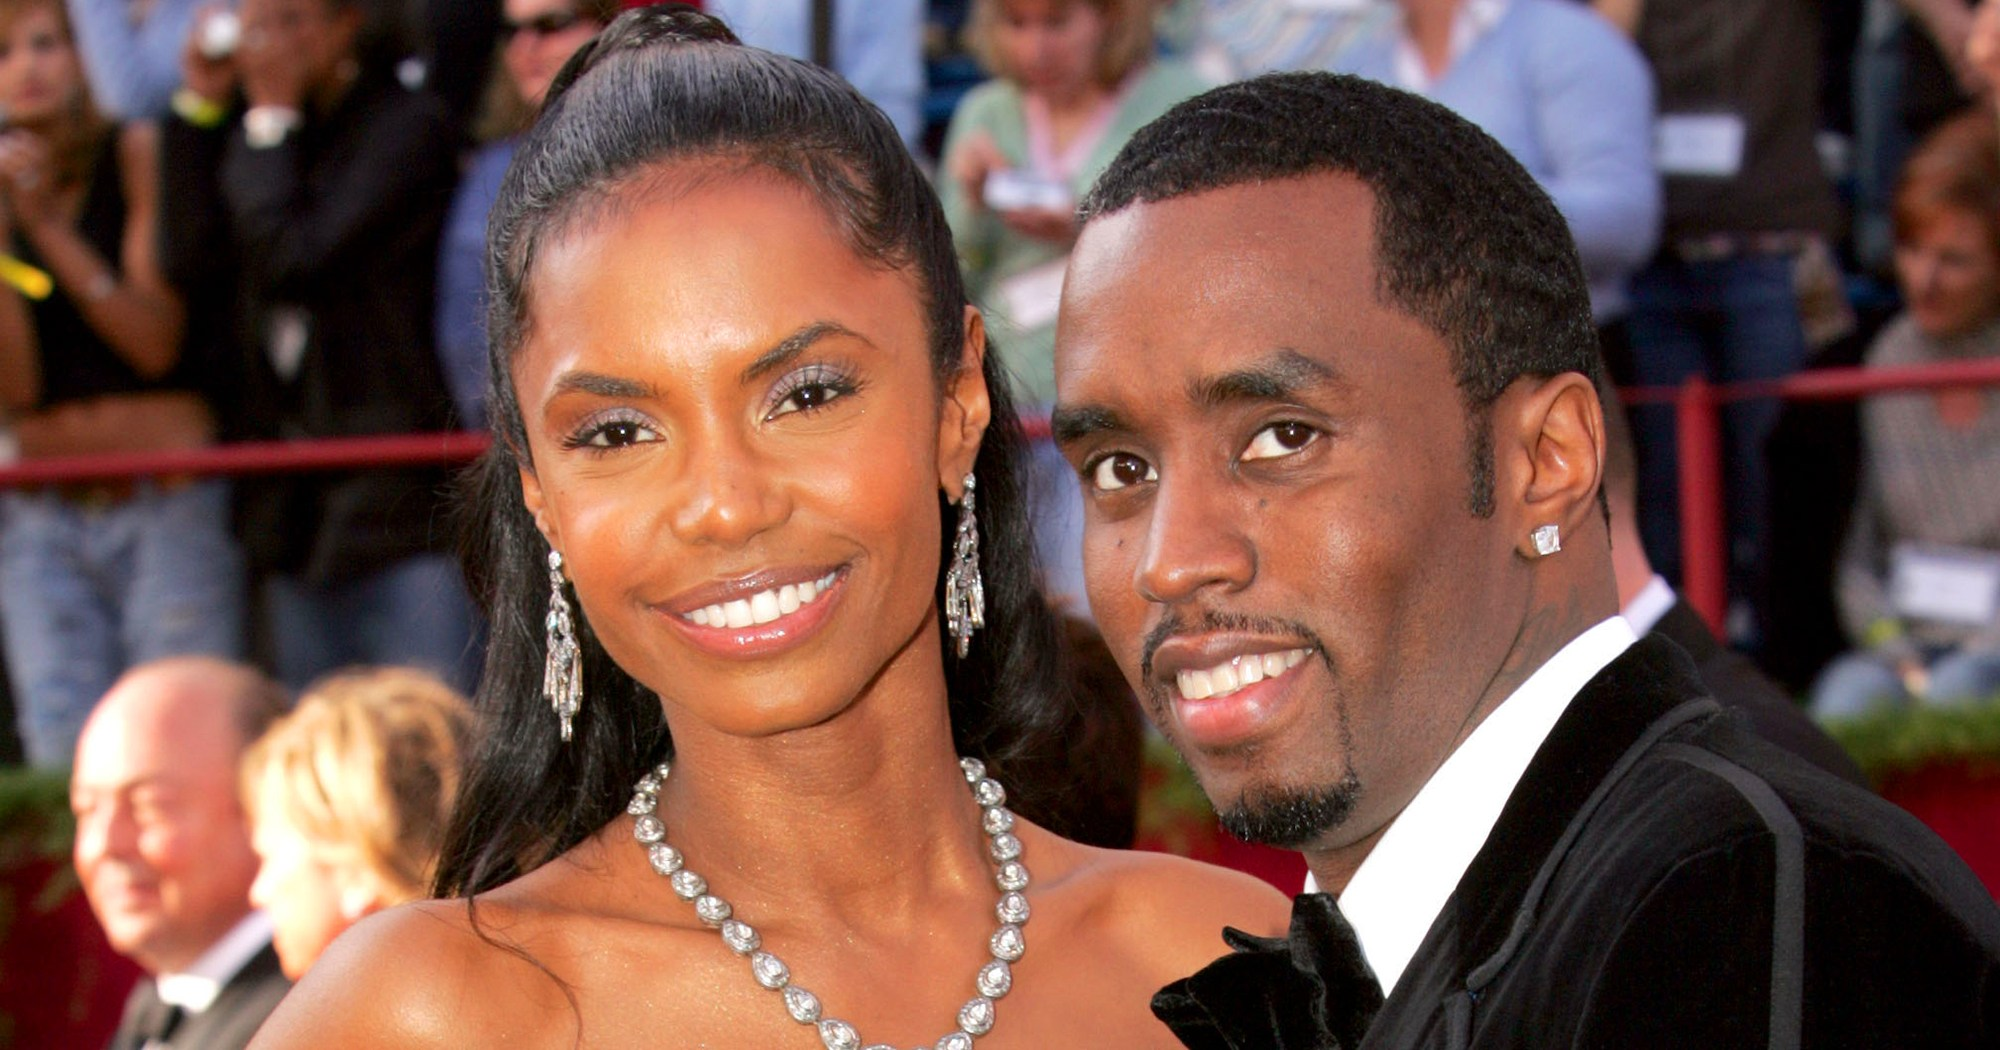 Sean 'Diddy' Combs Gives Emotional Eulogy to Ex-Girlfriend Kim Porter at Her Funeral